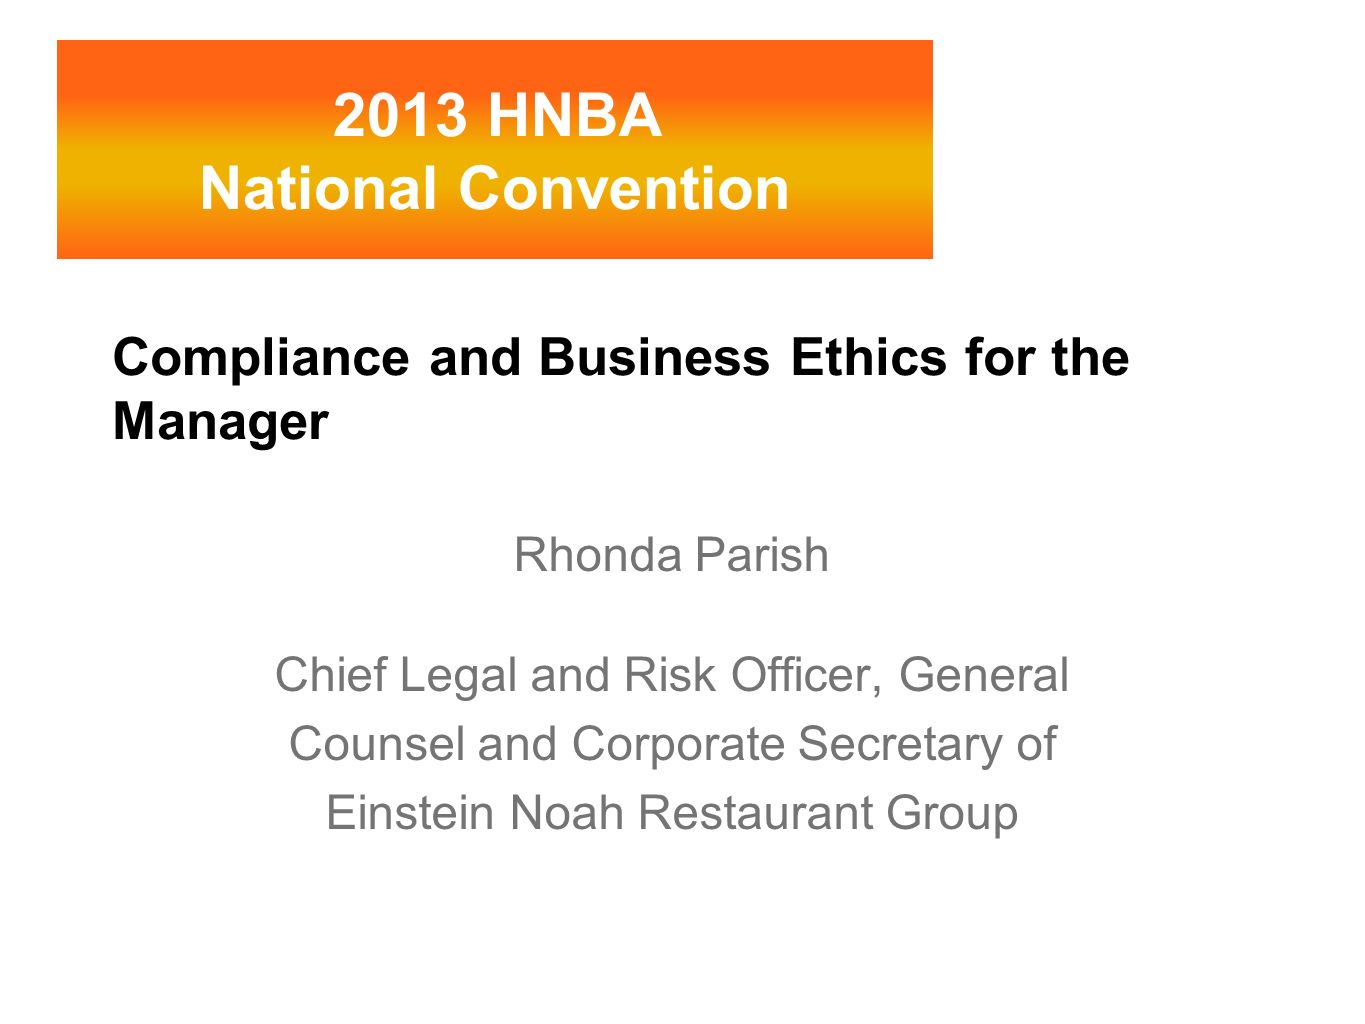 Compliance and Business Ethics for the Manager